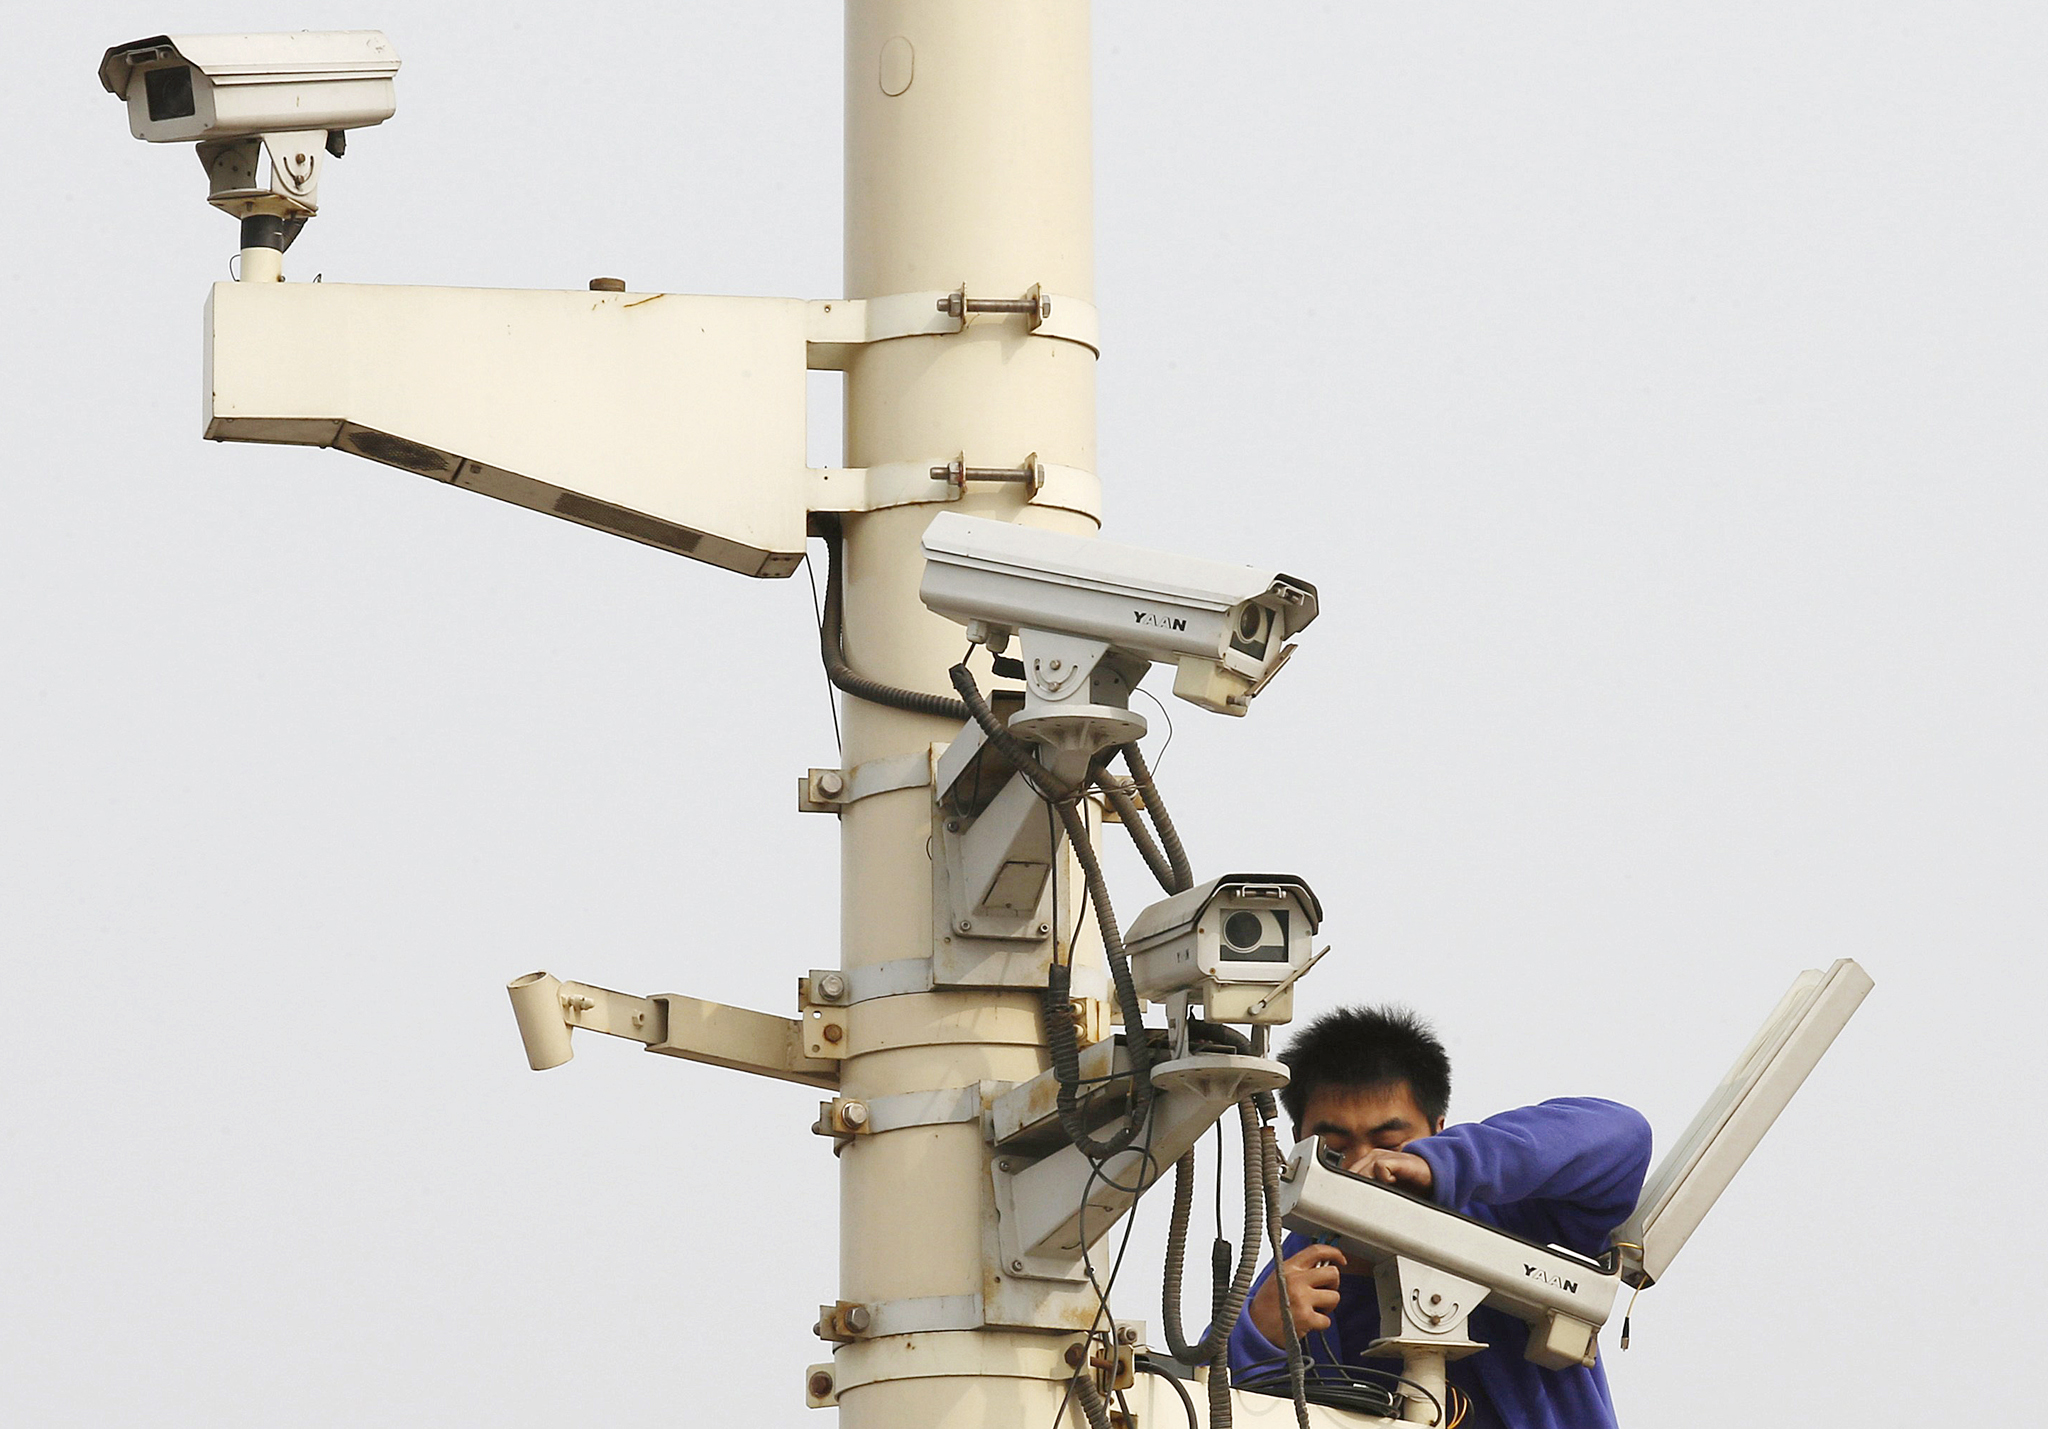 REUTERS PICTURE HIGHLIGHT...ATTENTION EDITORS - REUTERS PIC    PEK703  A man works on a security camera which is installed at Tiananmen Square in Beijing.  REUTERS/Kim Kyung-Hoon